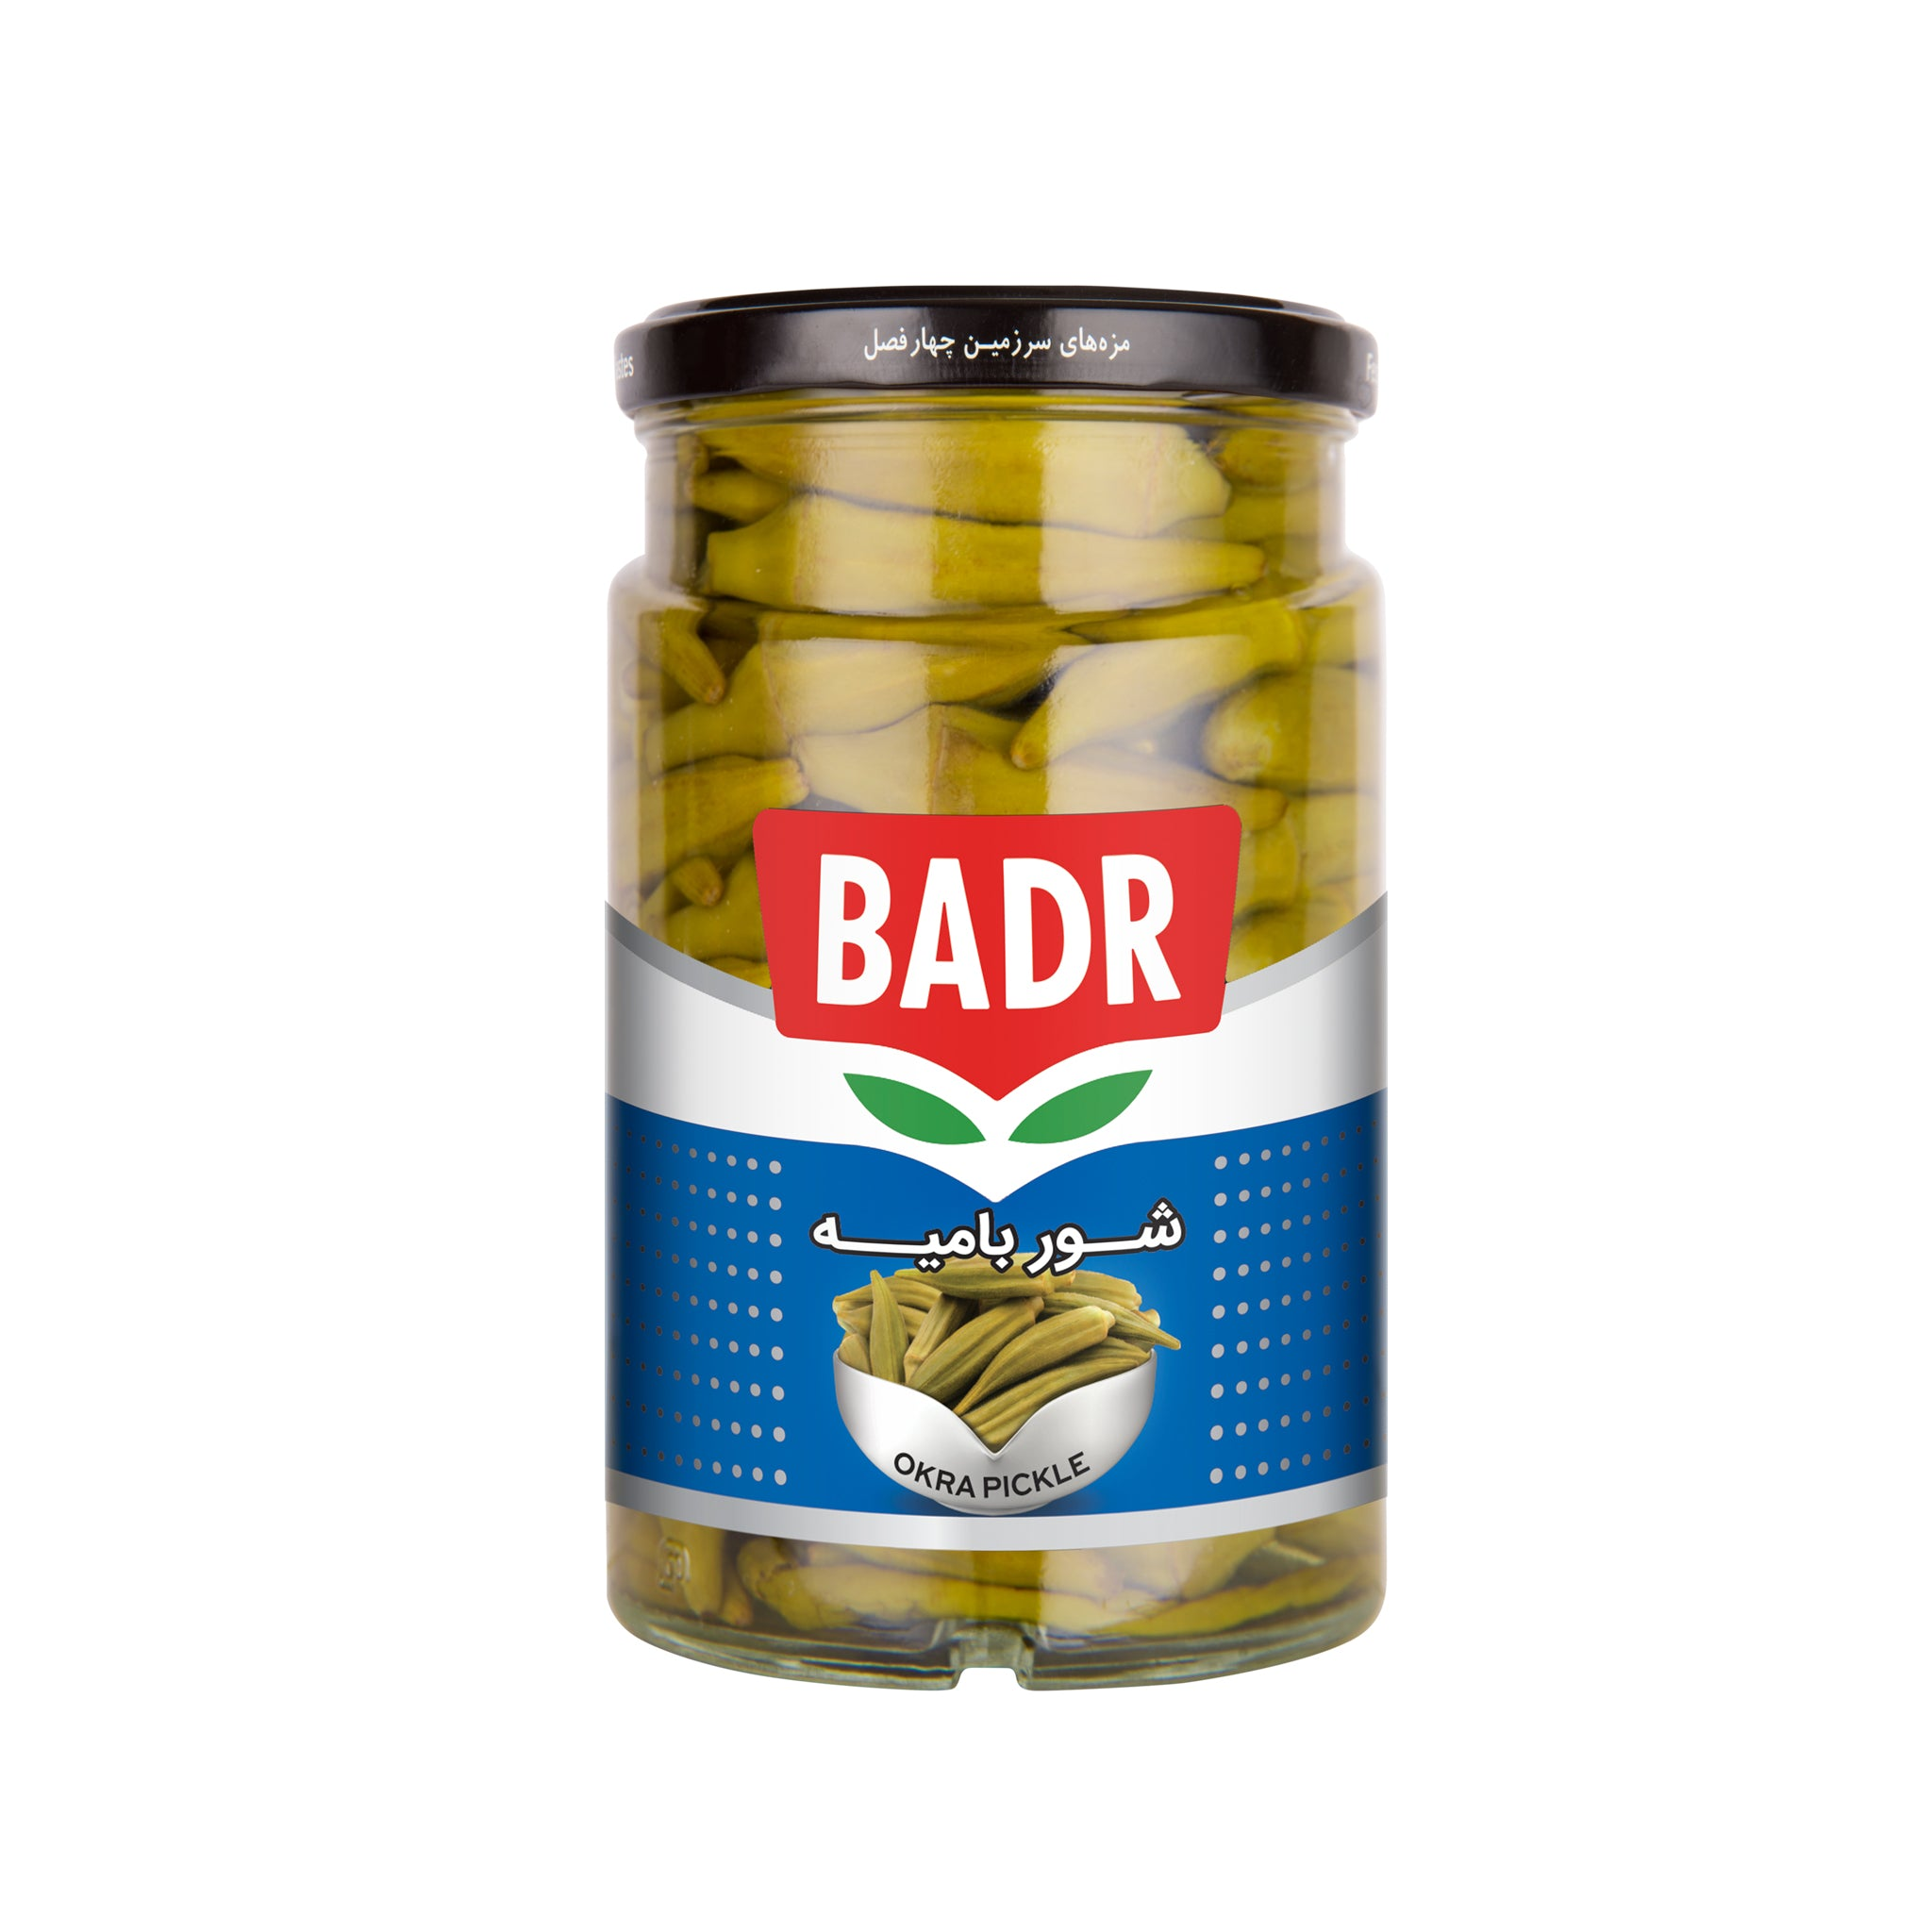 Badr Okra Pickle - شور بامیه